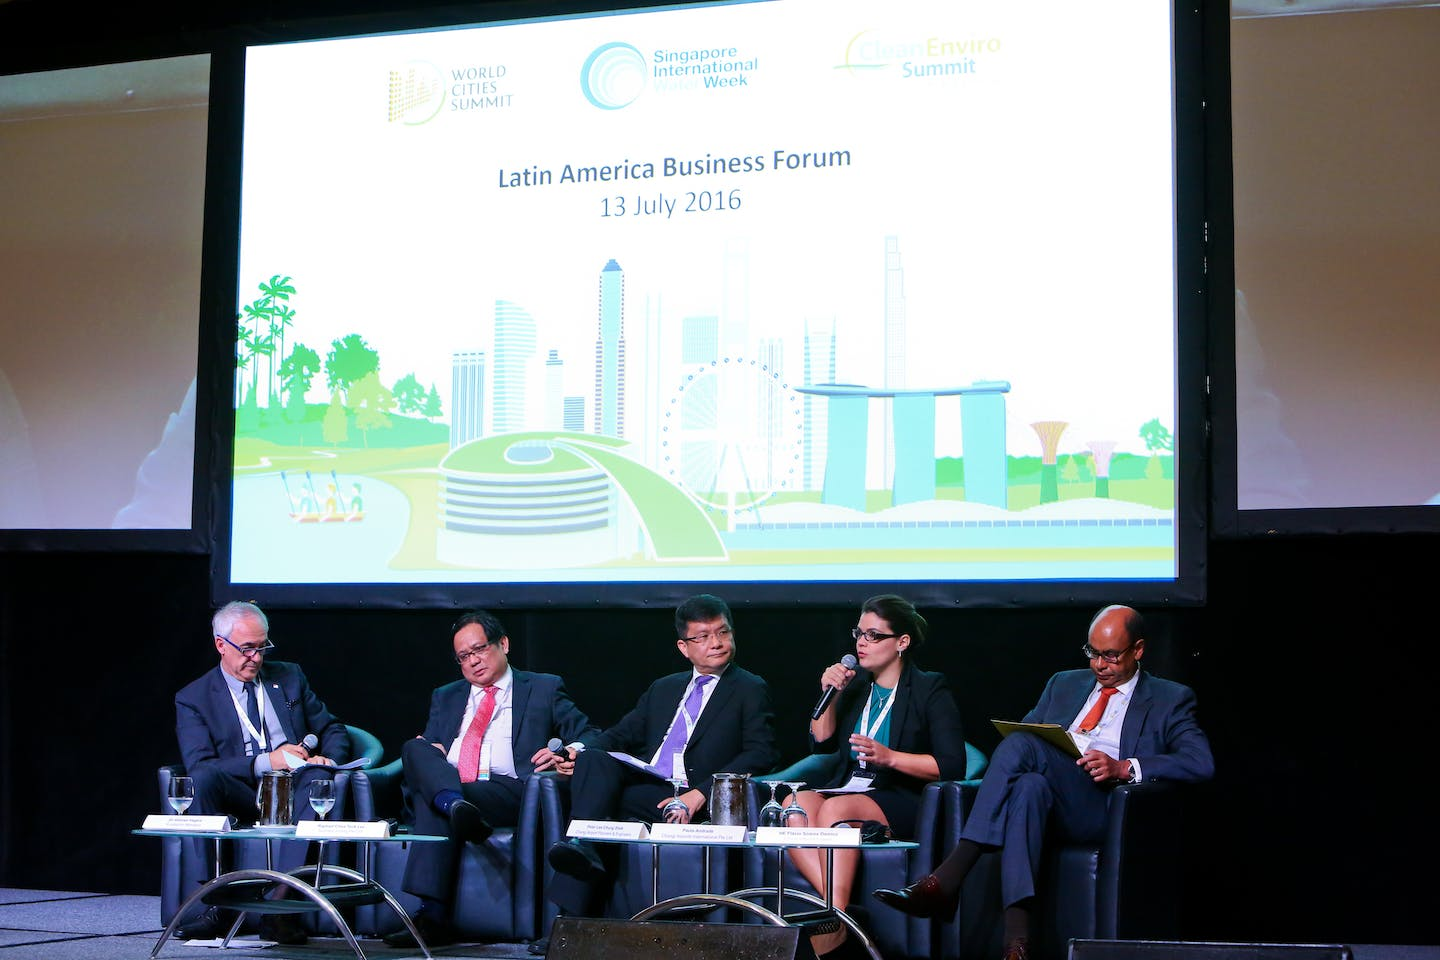 Discussions in progress at the Latin America Business Forum at Singapore International Water Week 2016. Image: SIWW